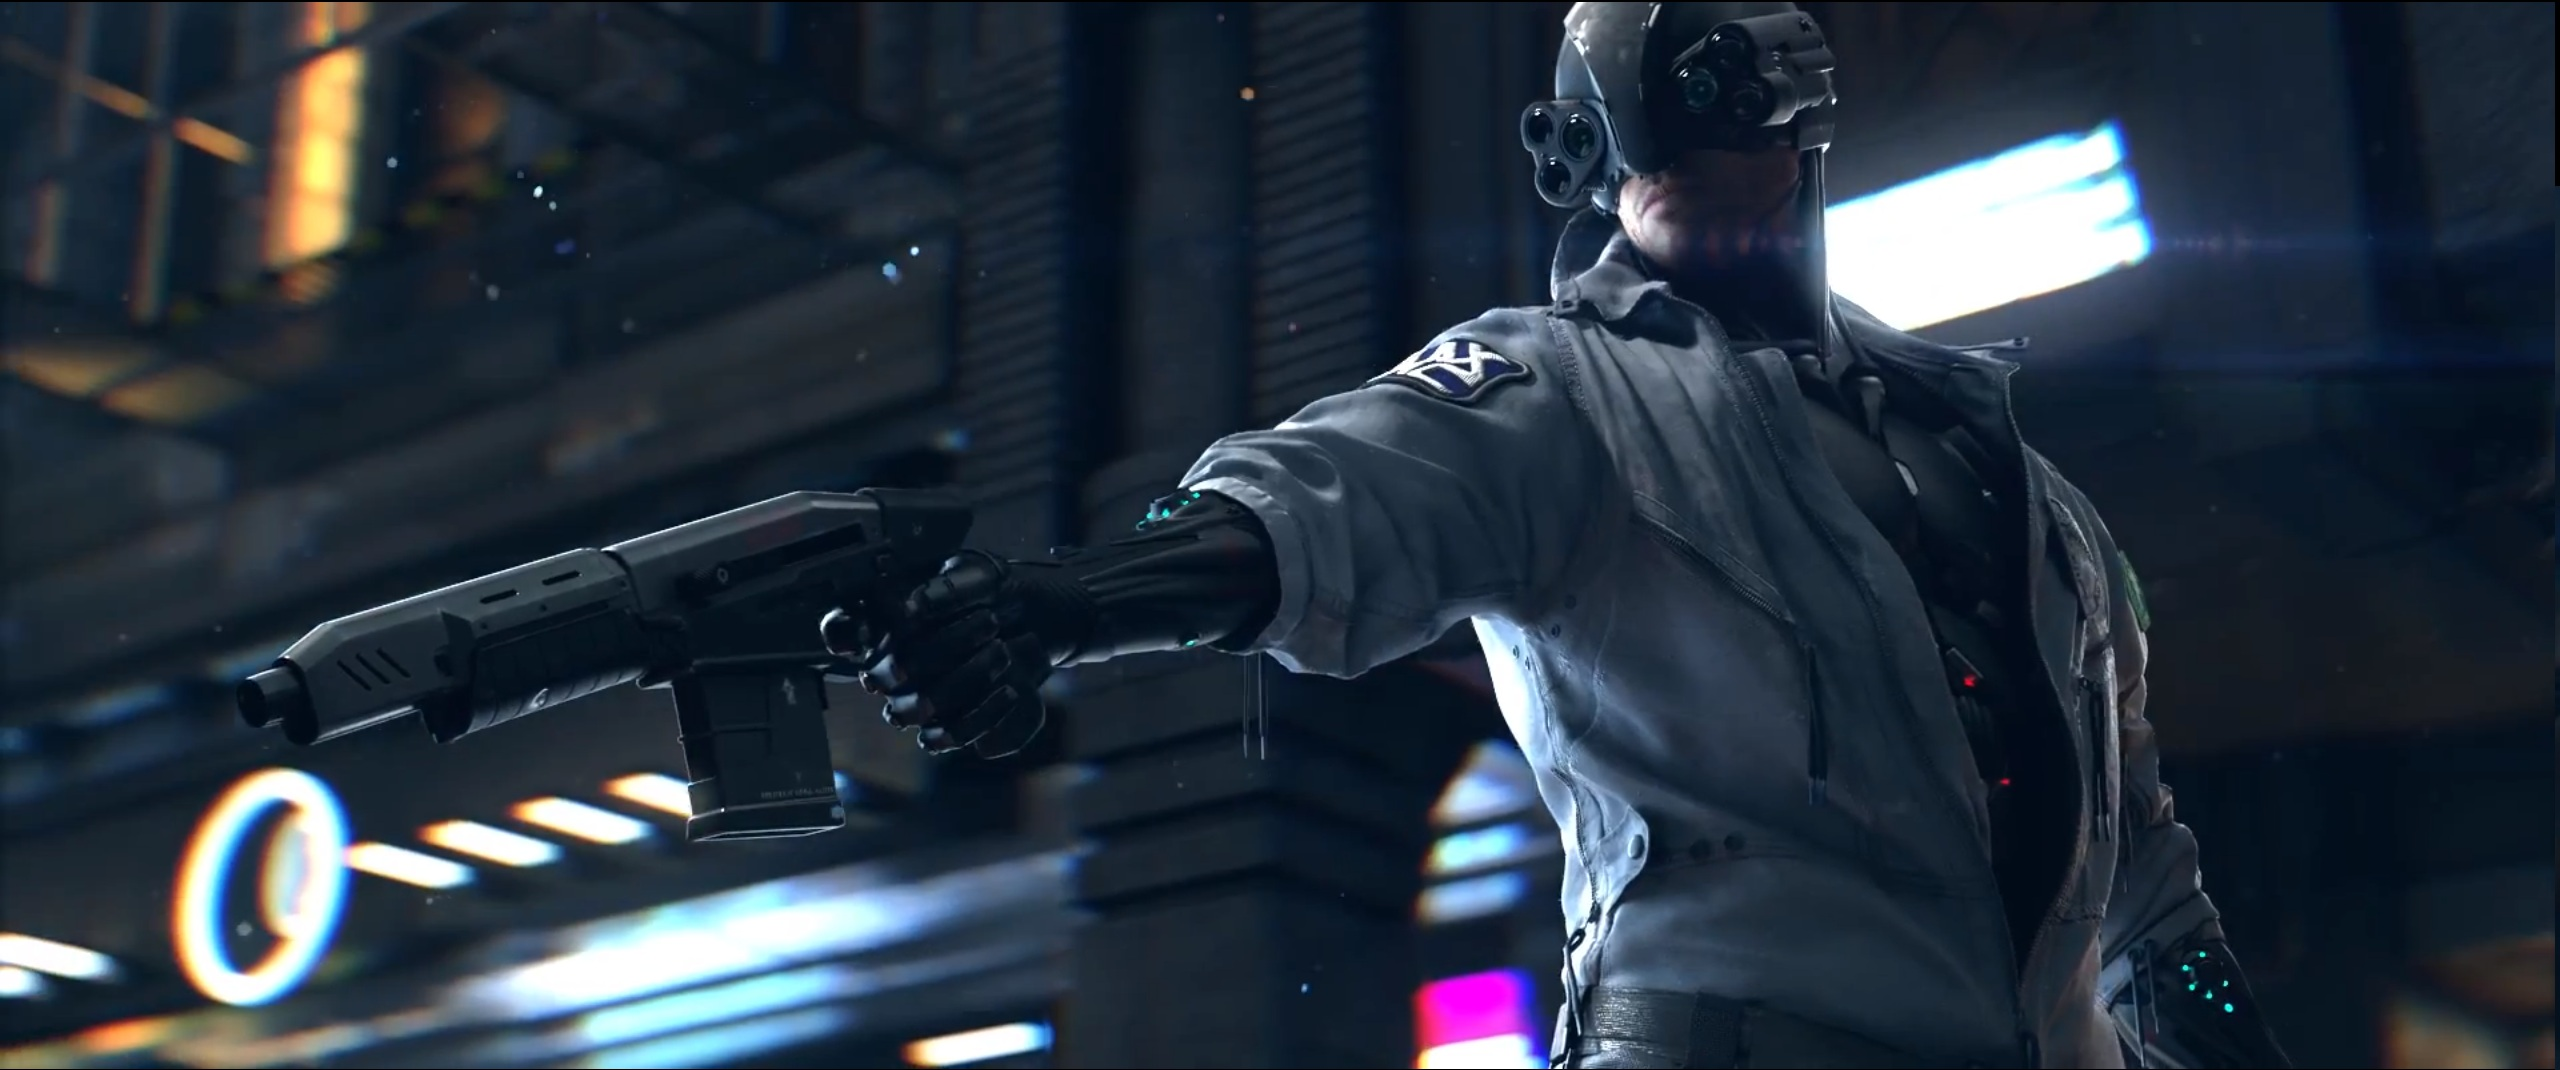 Police Officer Girl Wallpaper Cyberpunk 2077 Aims For Next Gen Consoles And Pcs